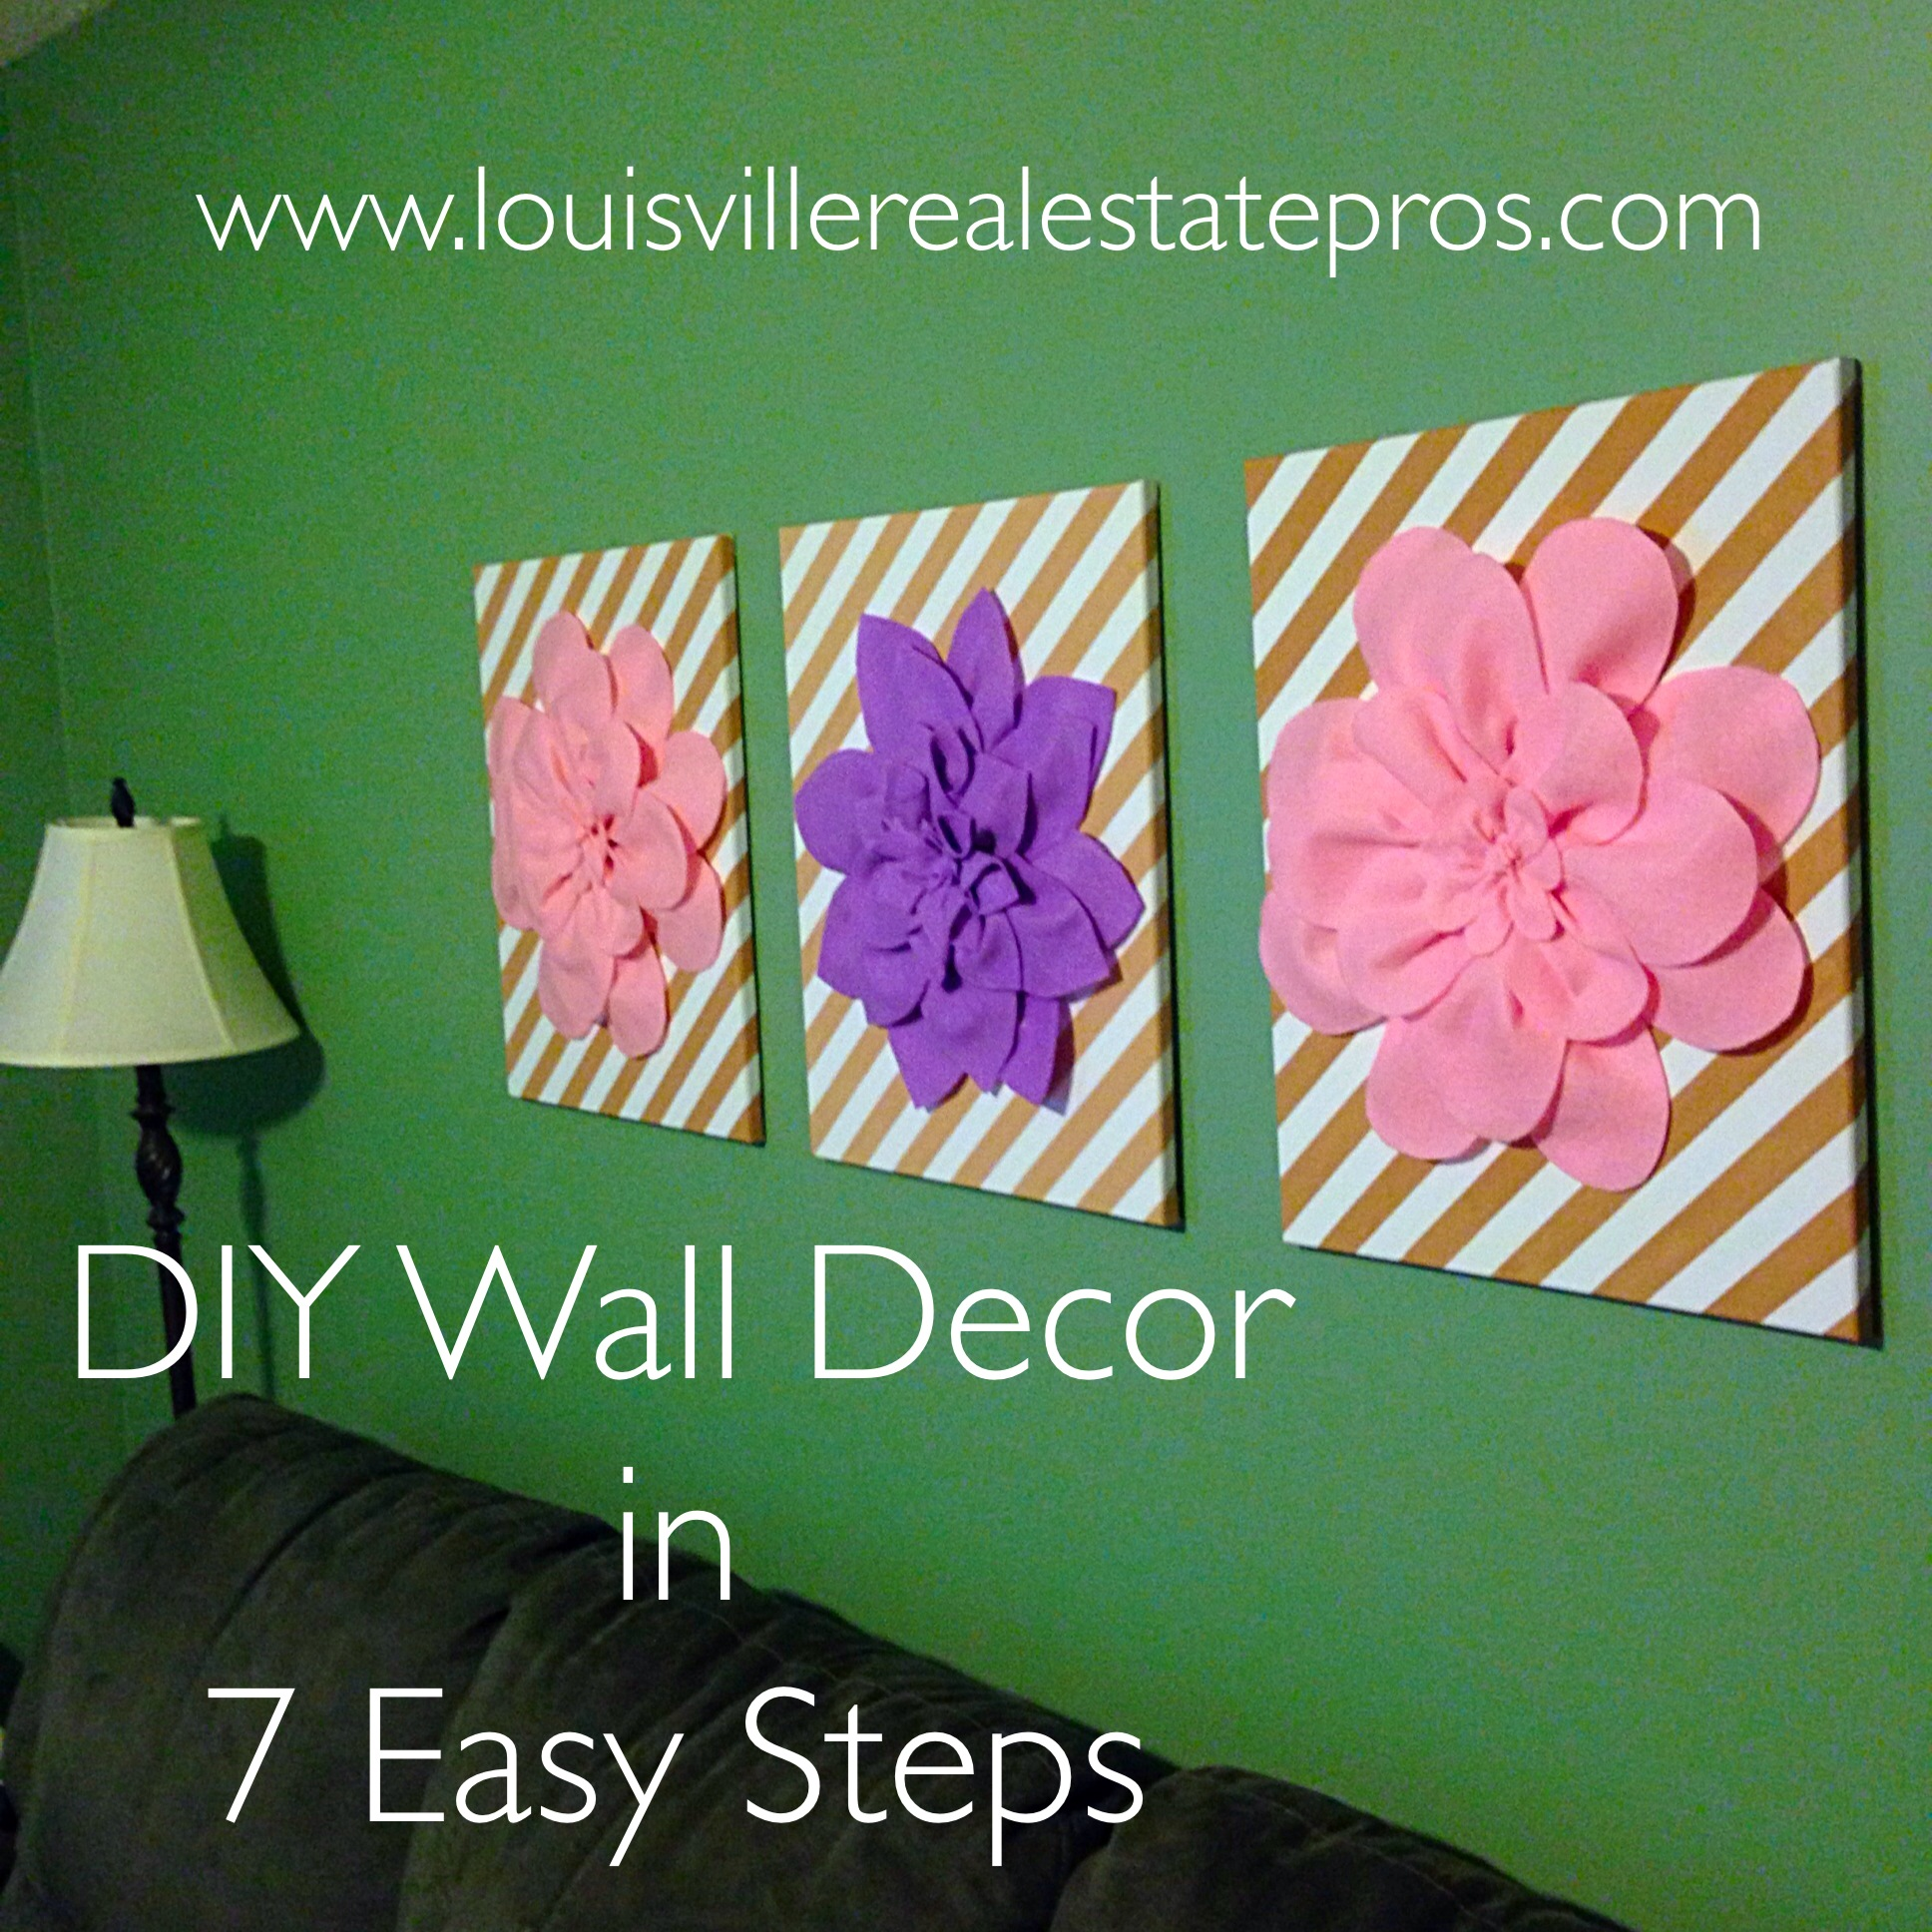 DIY Wall Decor in 7 Easy Steps